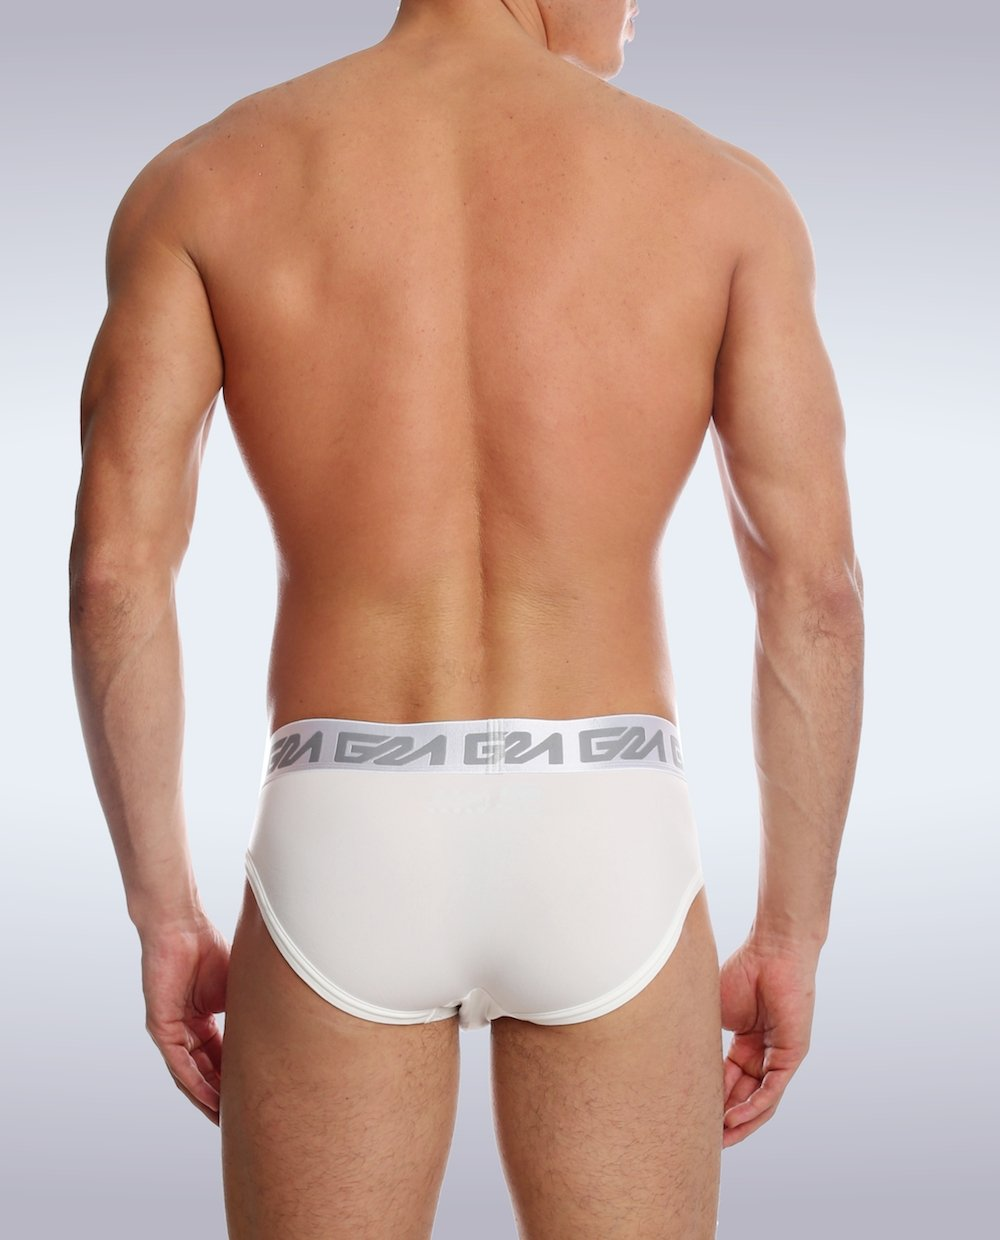 COLLINS Brief - Garçon Underwear sexy men's underwear Briefs Garçon Underwear